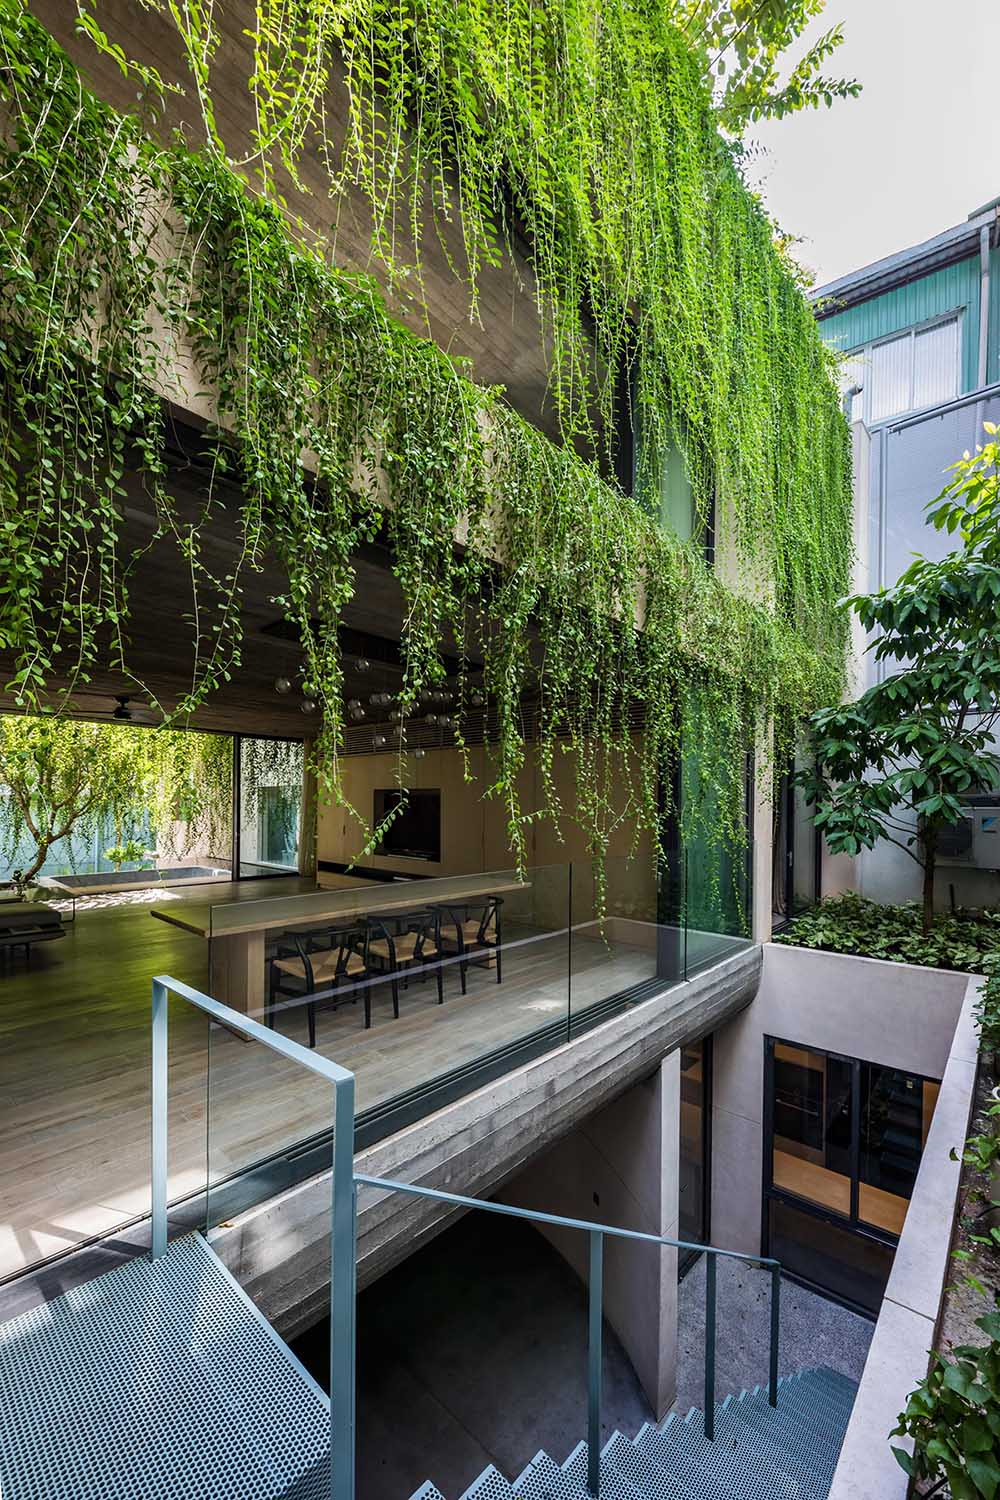 A modern mutli-storey house with overhanging plants.